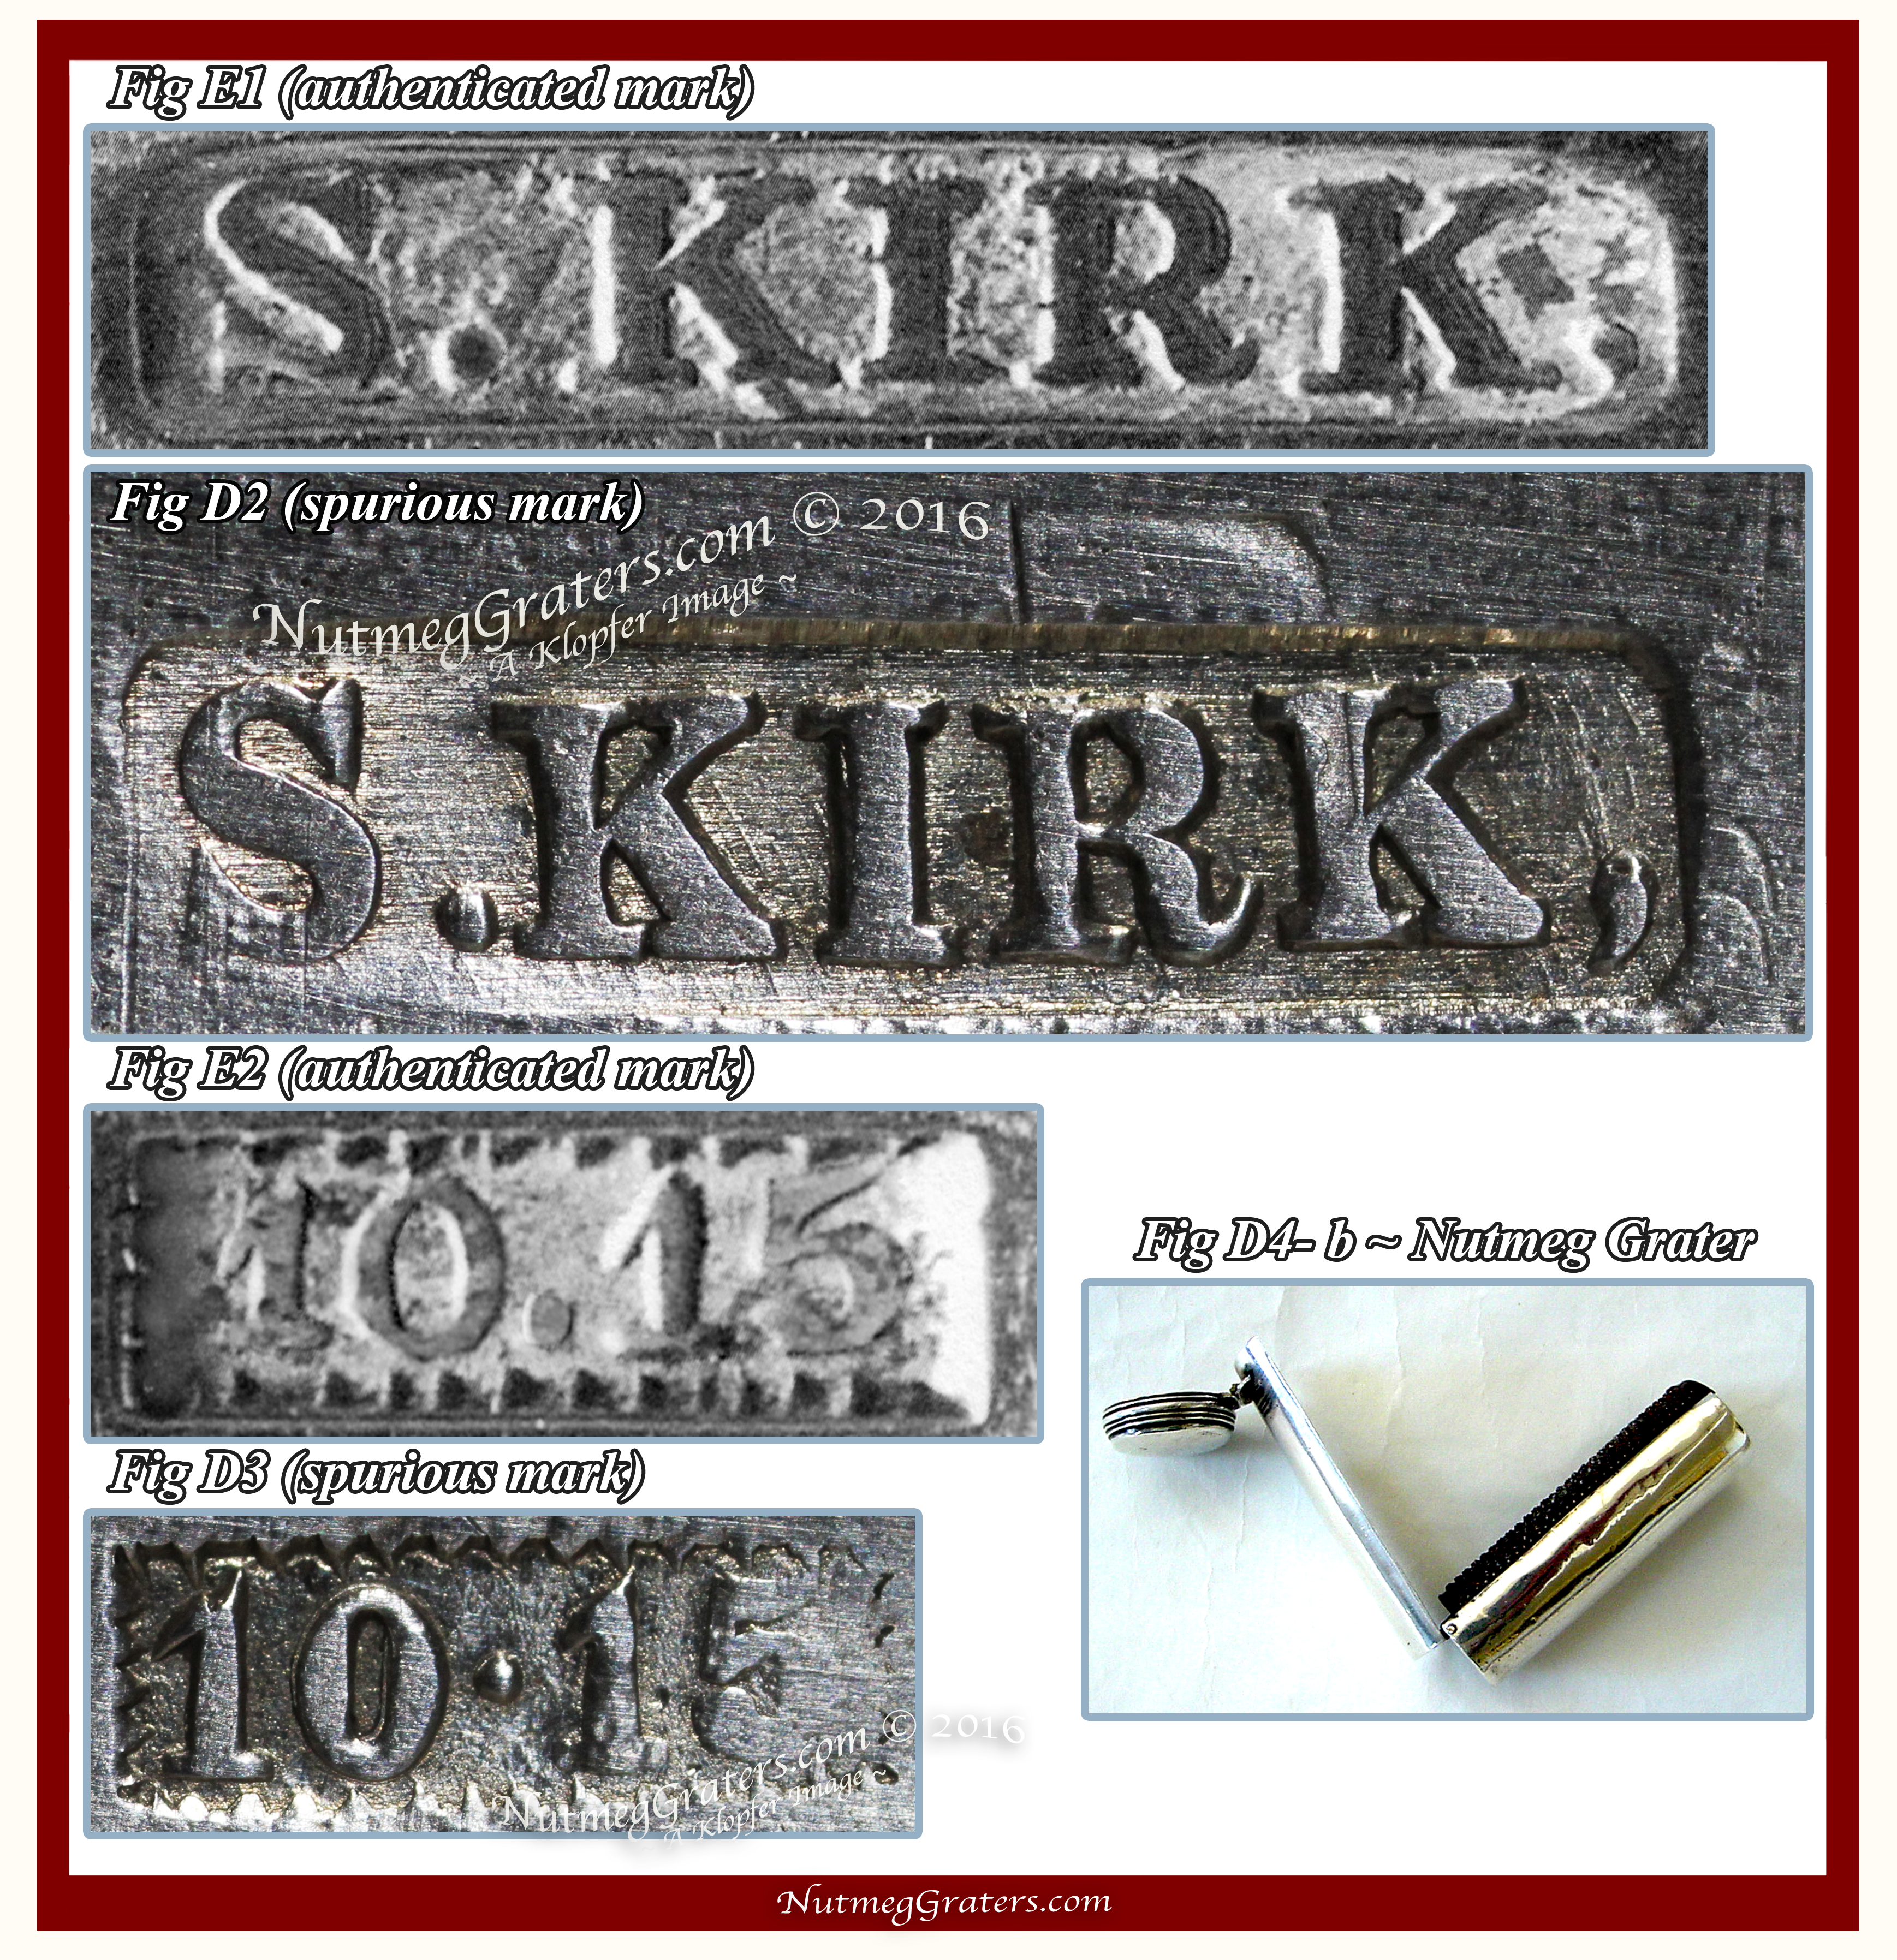 Comparison of Authenticated VS Spurious Kirk maker's mark